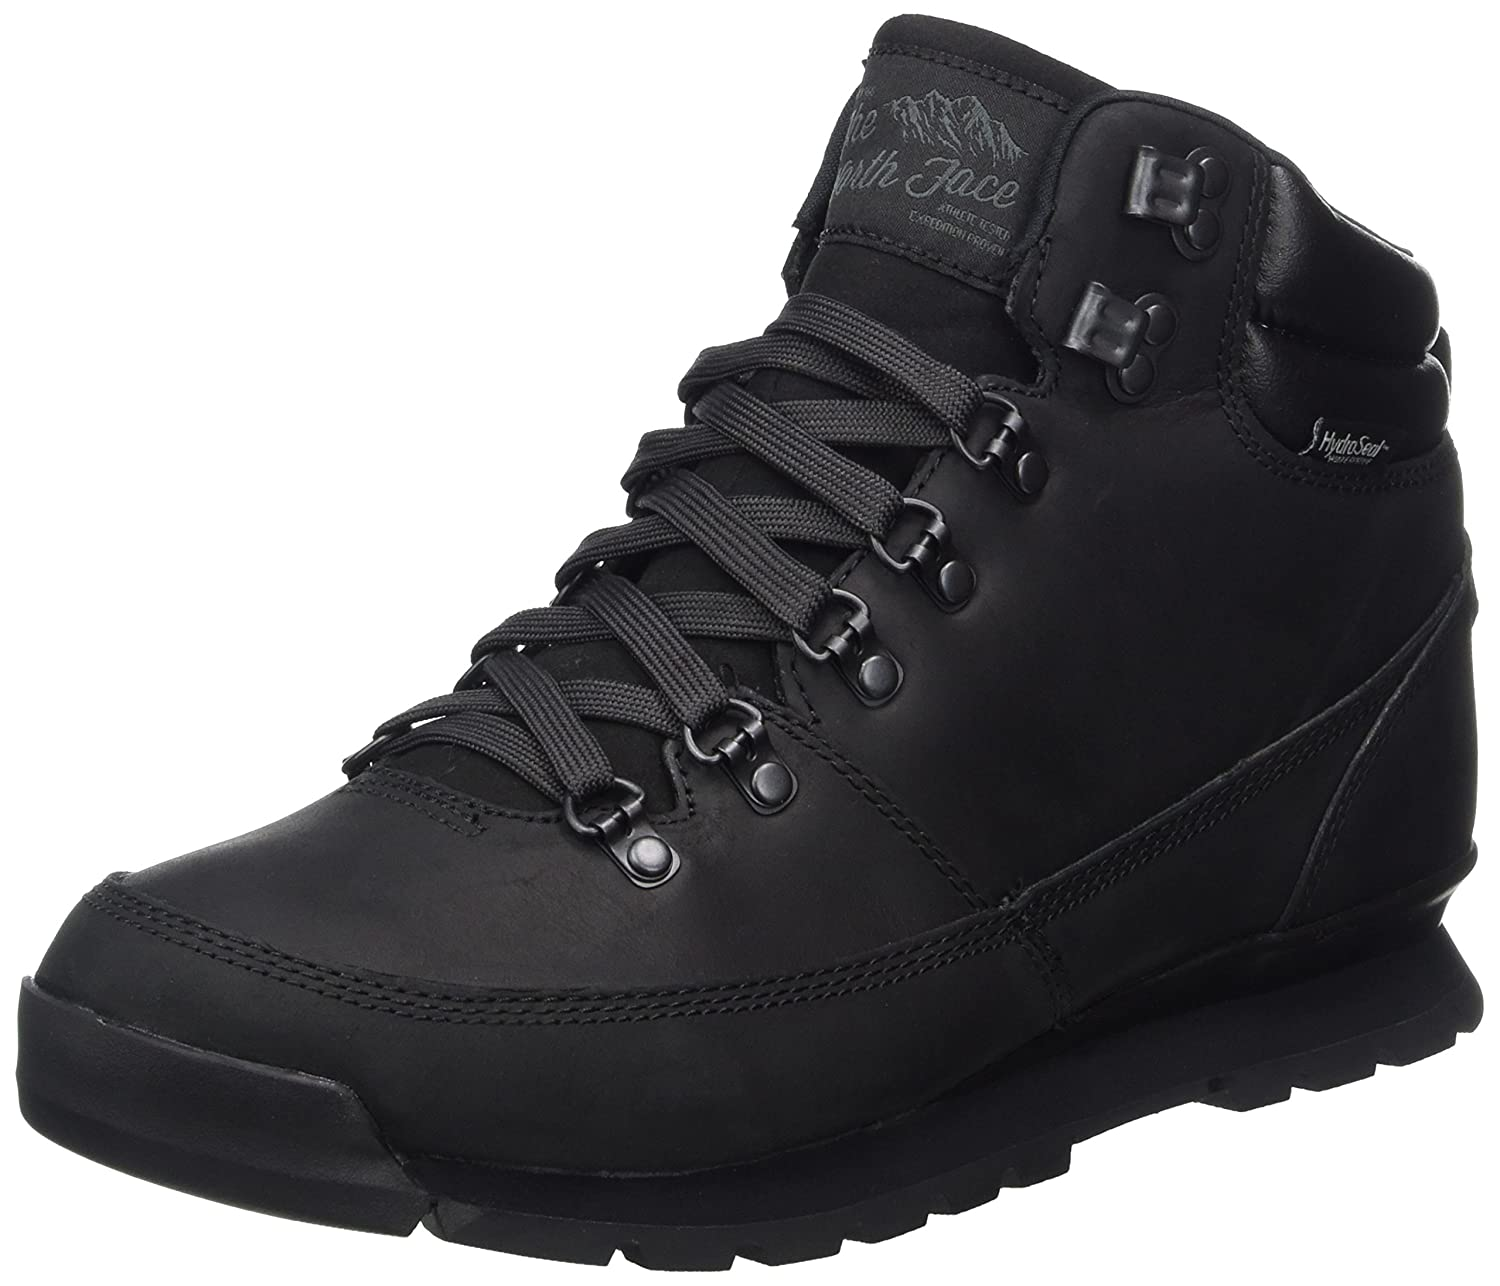 ab3a56912 THE NORTH FACE Men's Back-to-Berkeley Redux Leather High Rise Hiking Boots